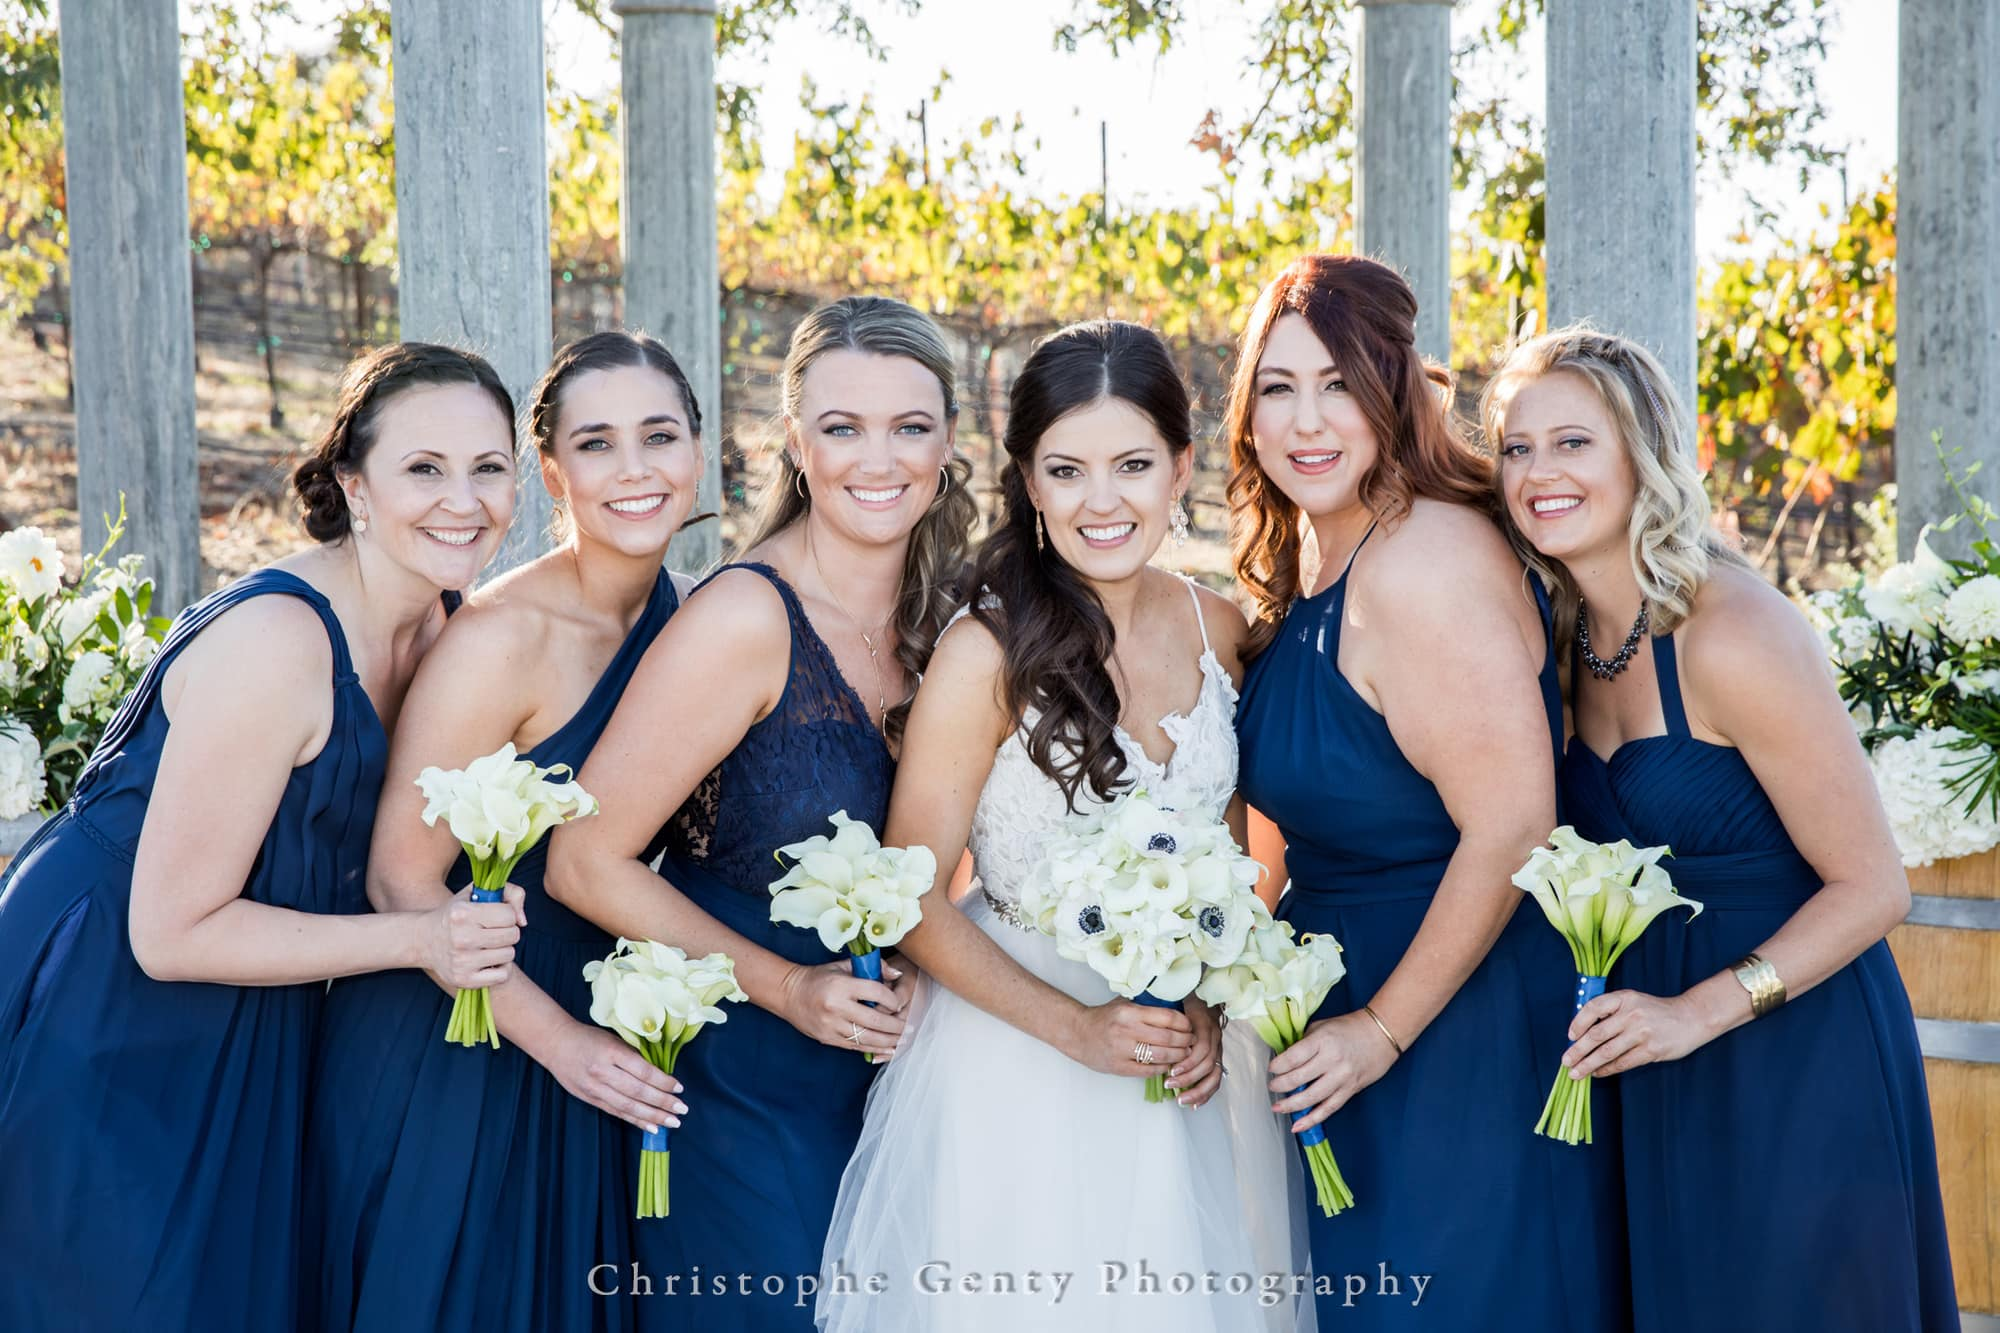 Wedding Wedding Photography at The Meritage Inn & Spa, Napa CA